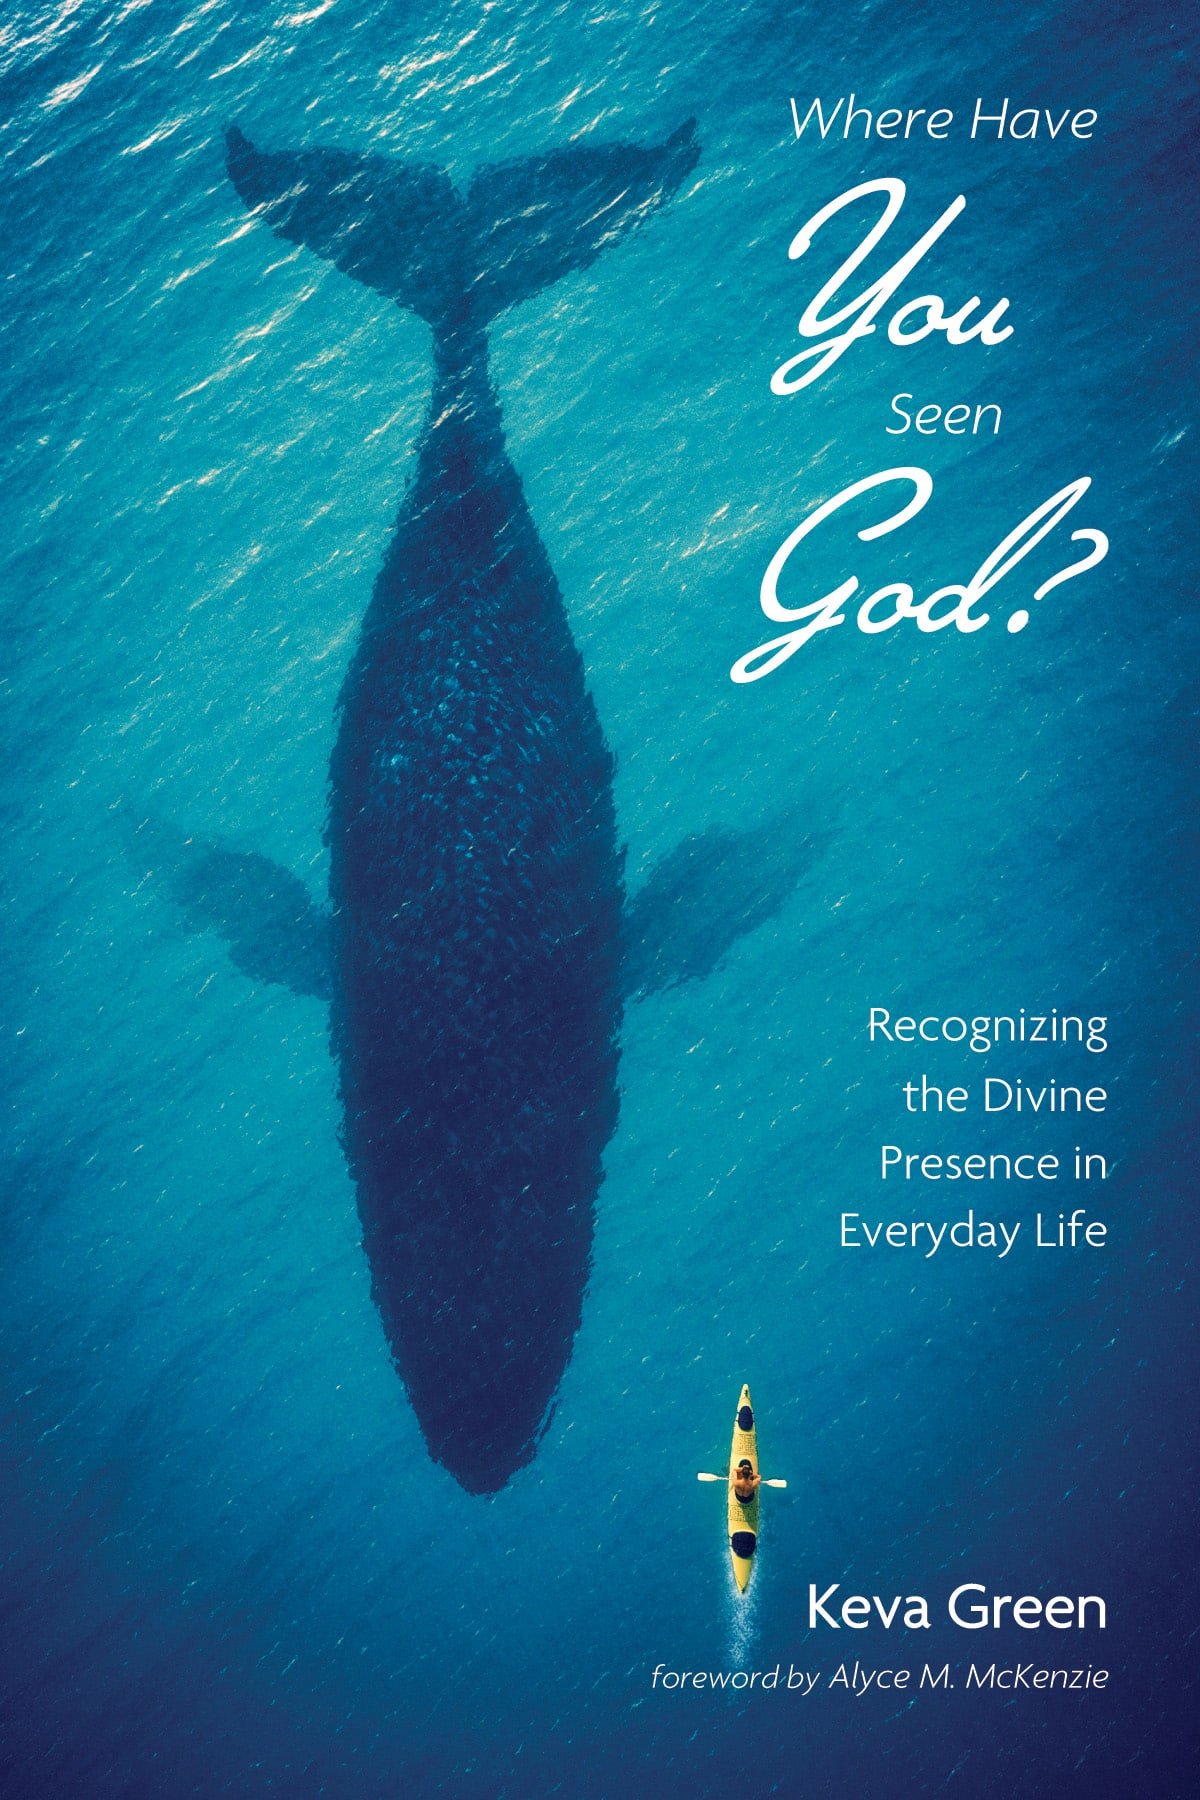 Where have you seen God book cover